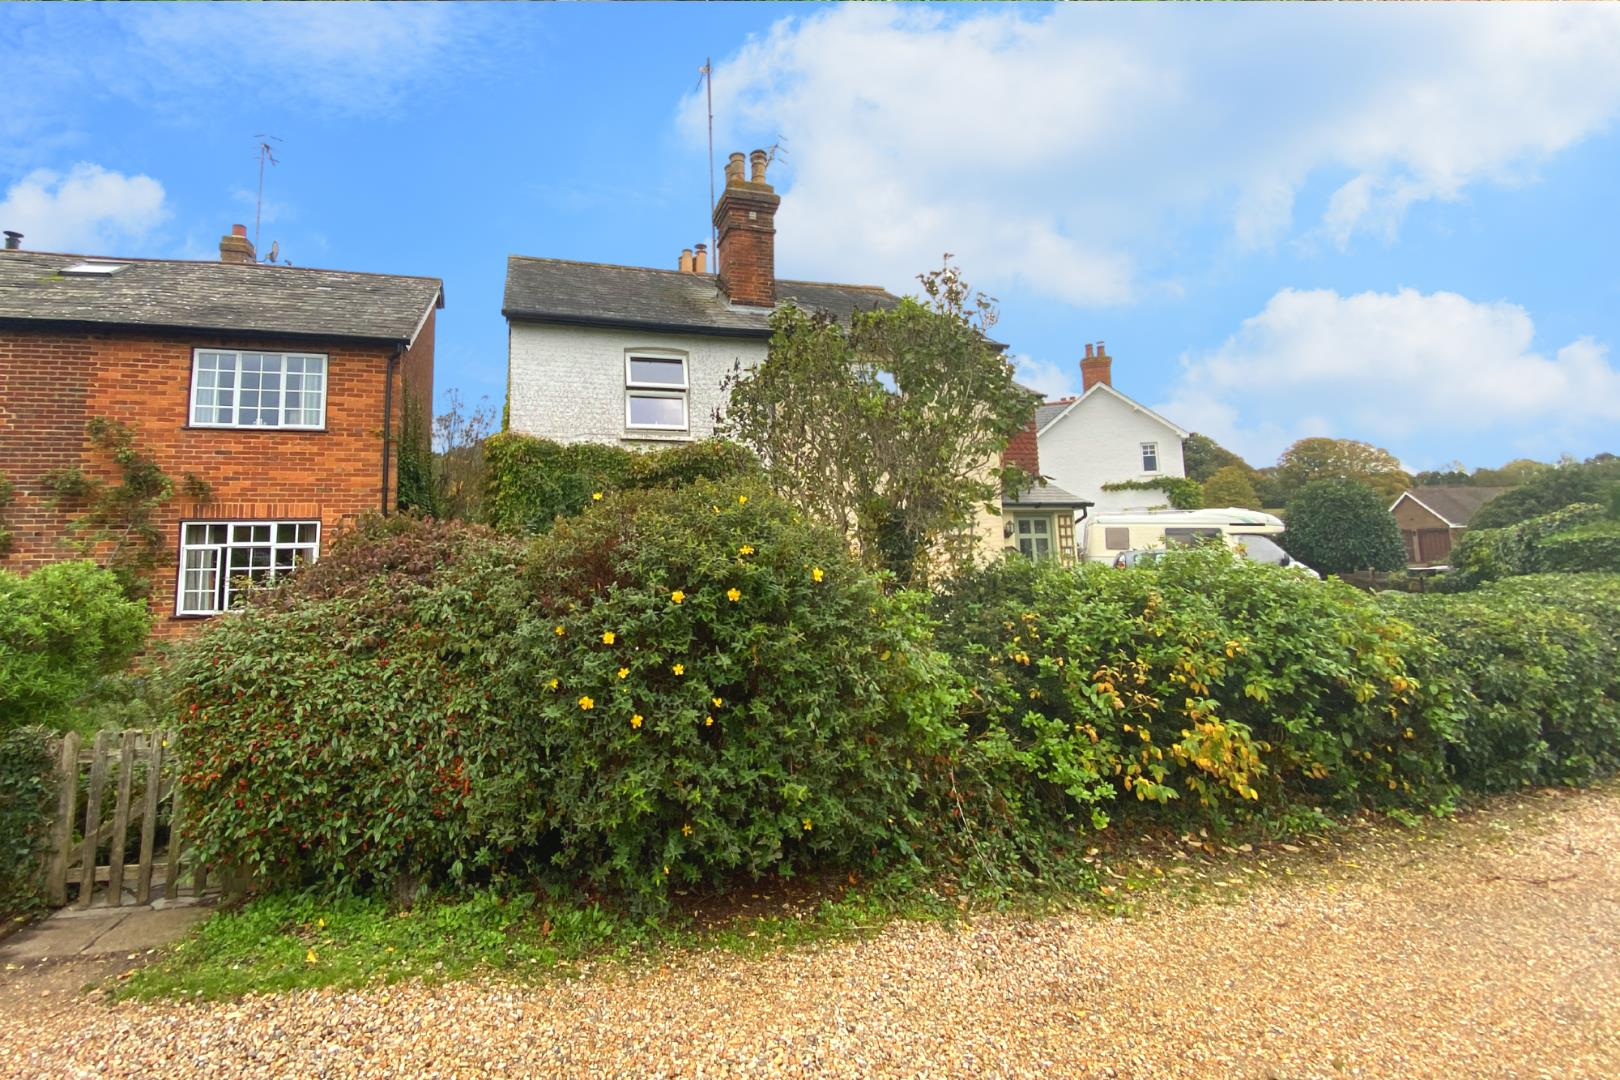 2 bed house for sale in Wonersh 1